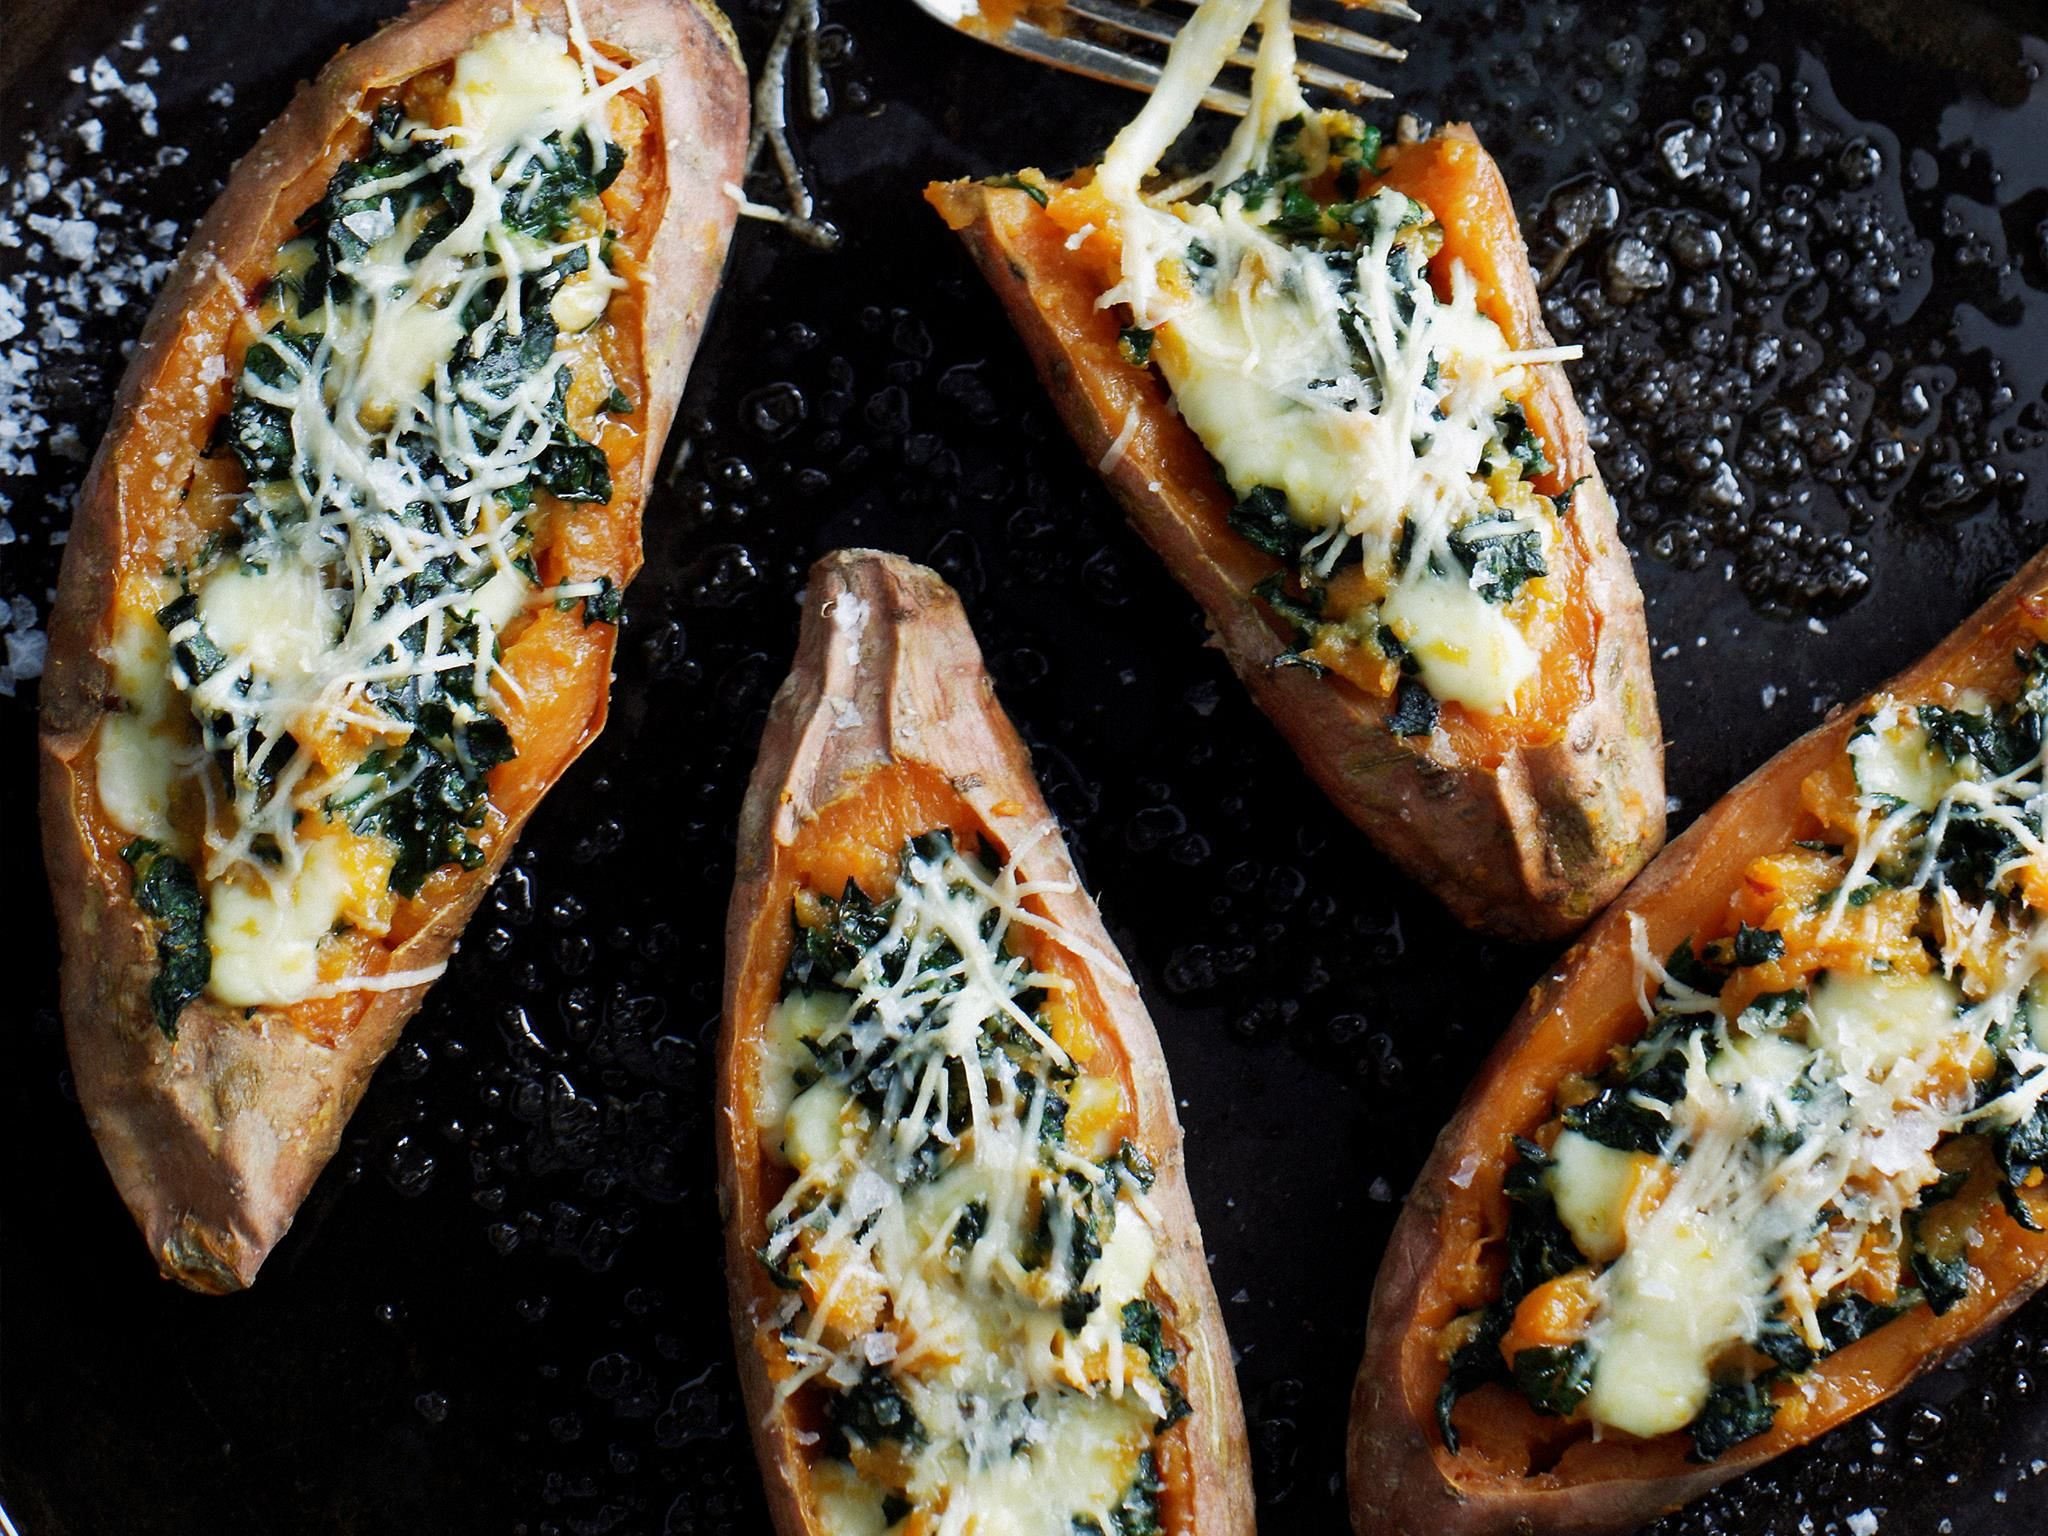 Kumara baked with silverbeet and mozzarella, kumara recipe, brought to you by Everyday Food